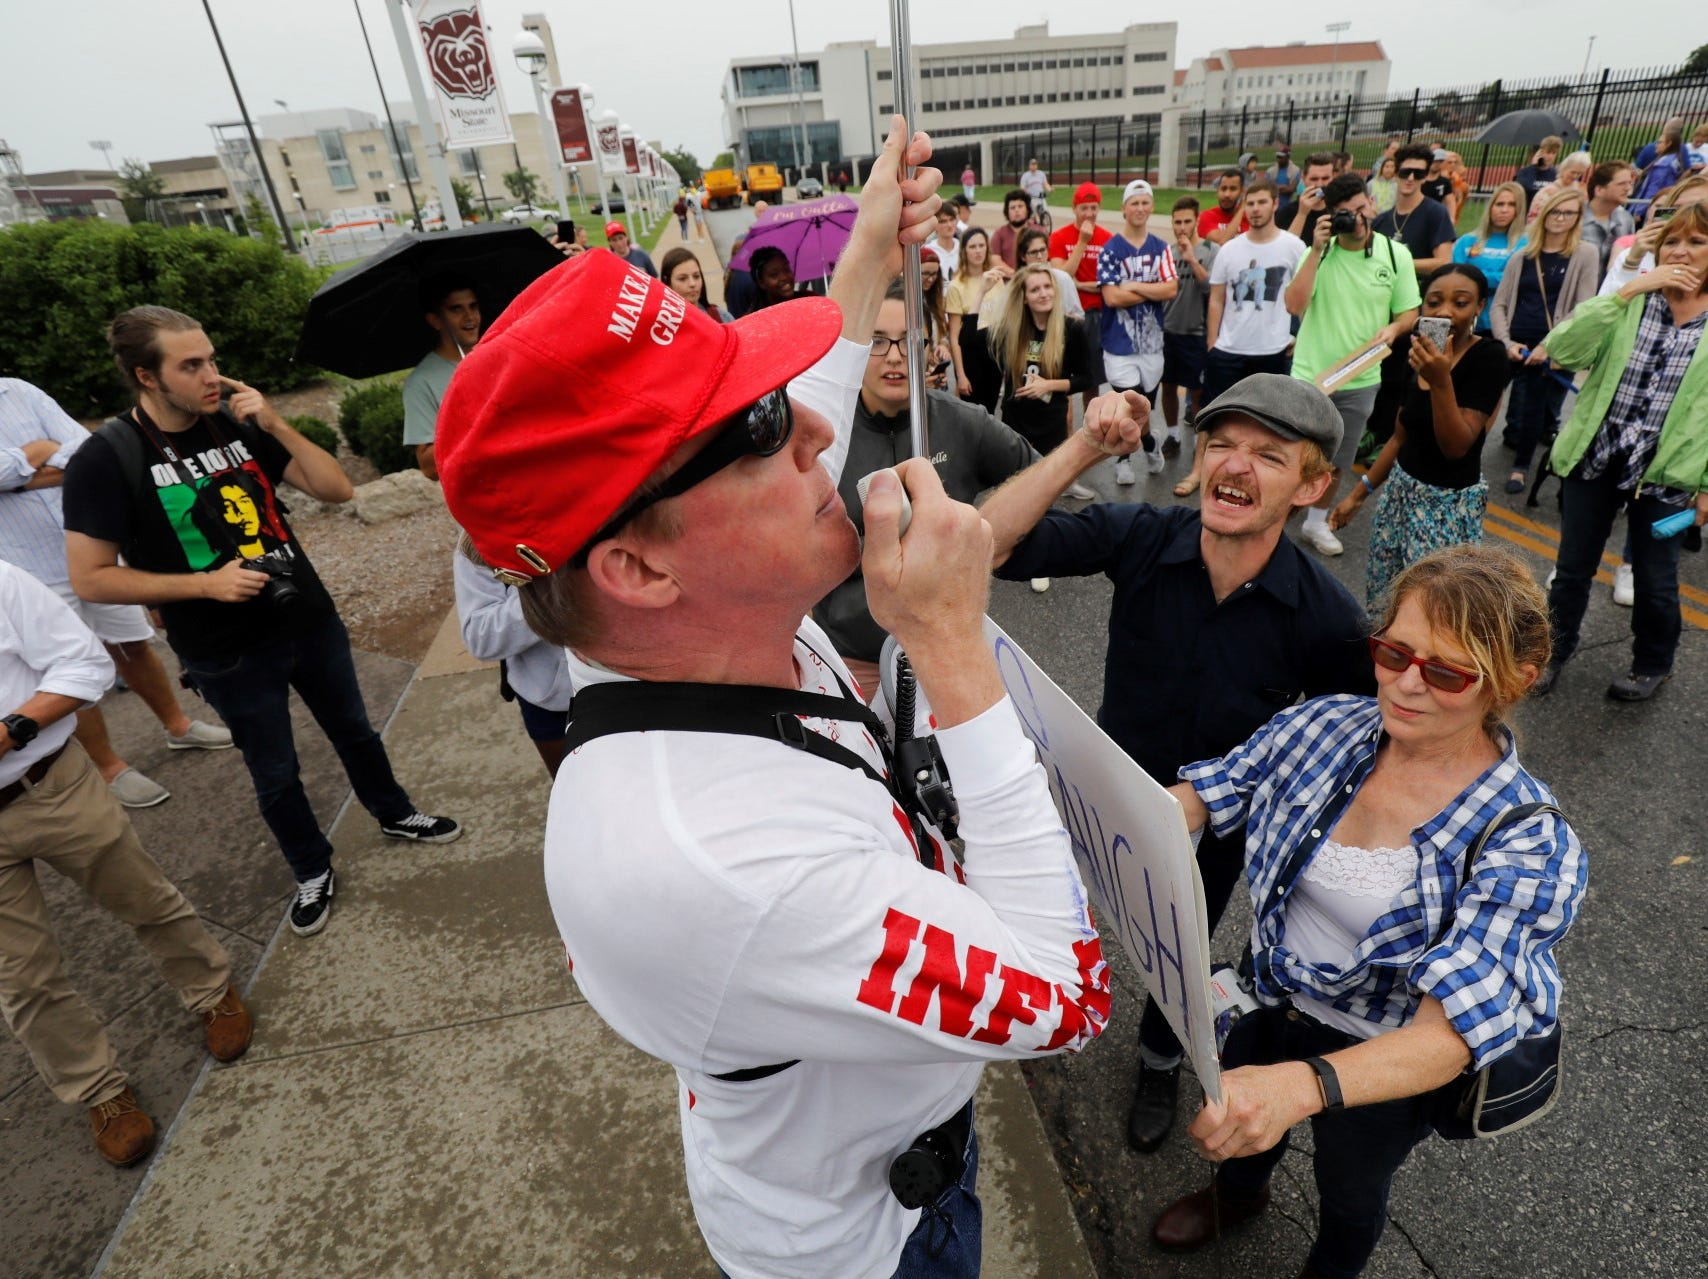 Trump supporters and protesters clash outside JQH Arena in Springfield on Friday, Sept. 21, 2018.